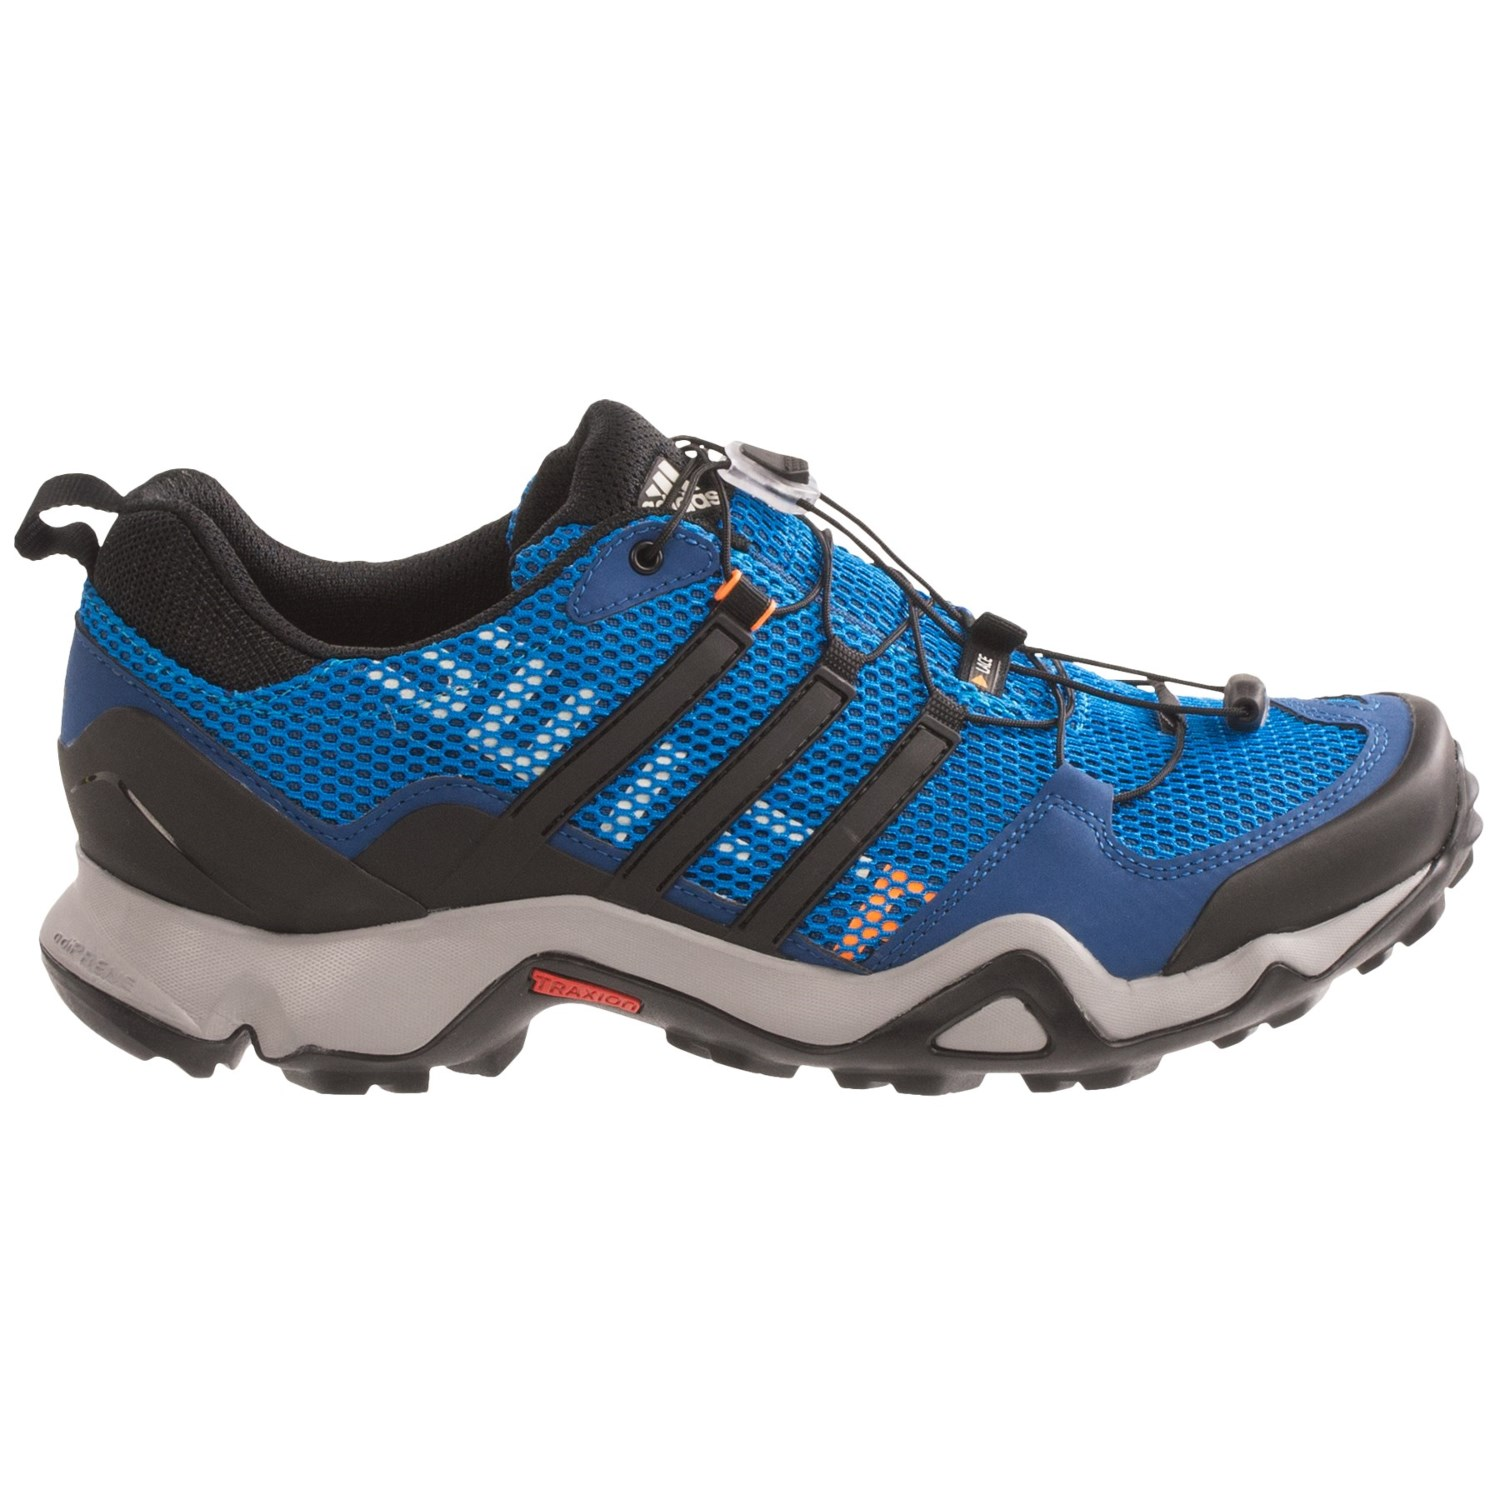 Ecco Trail Running Shoes